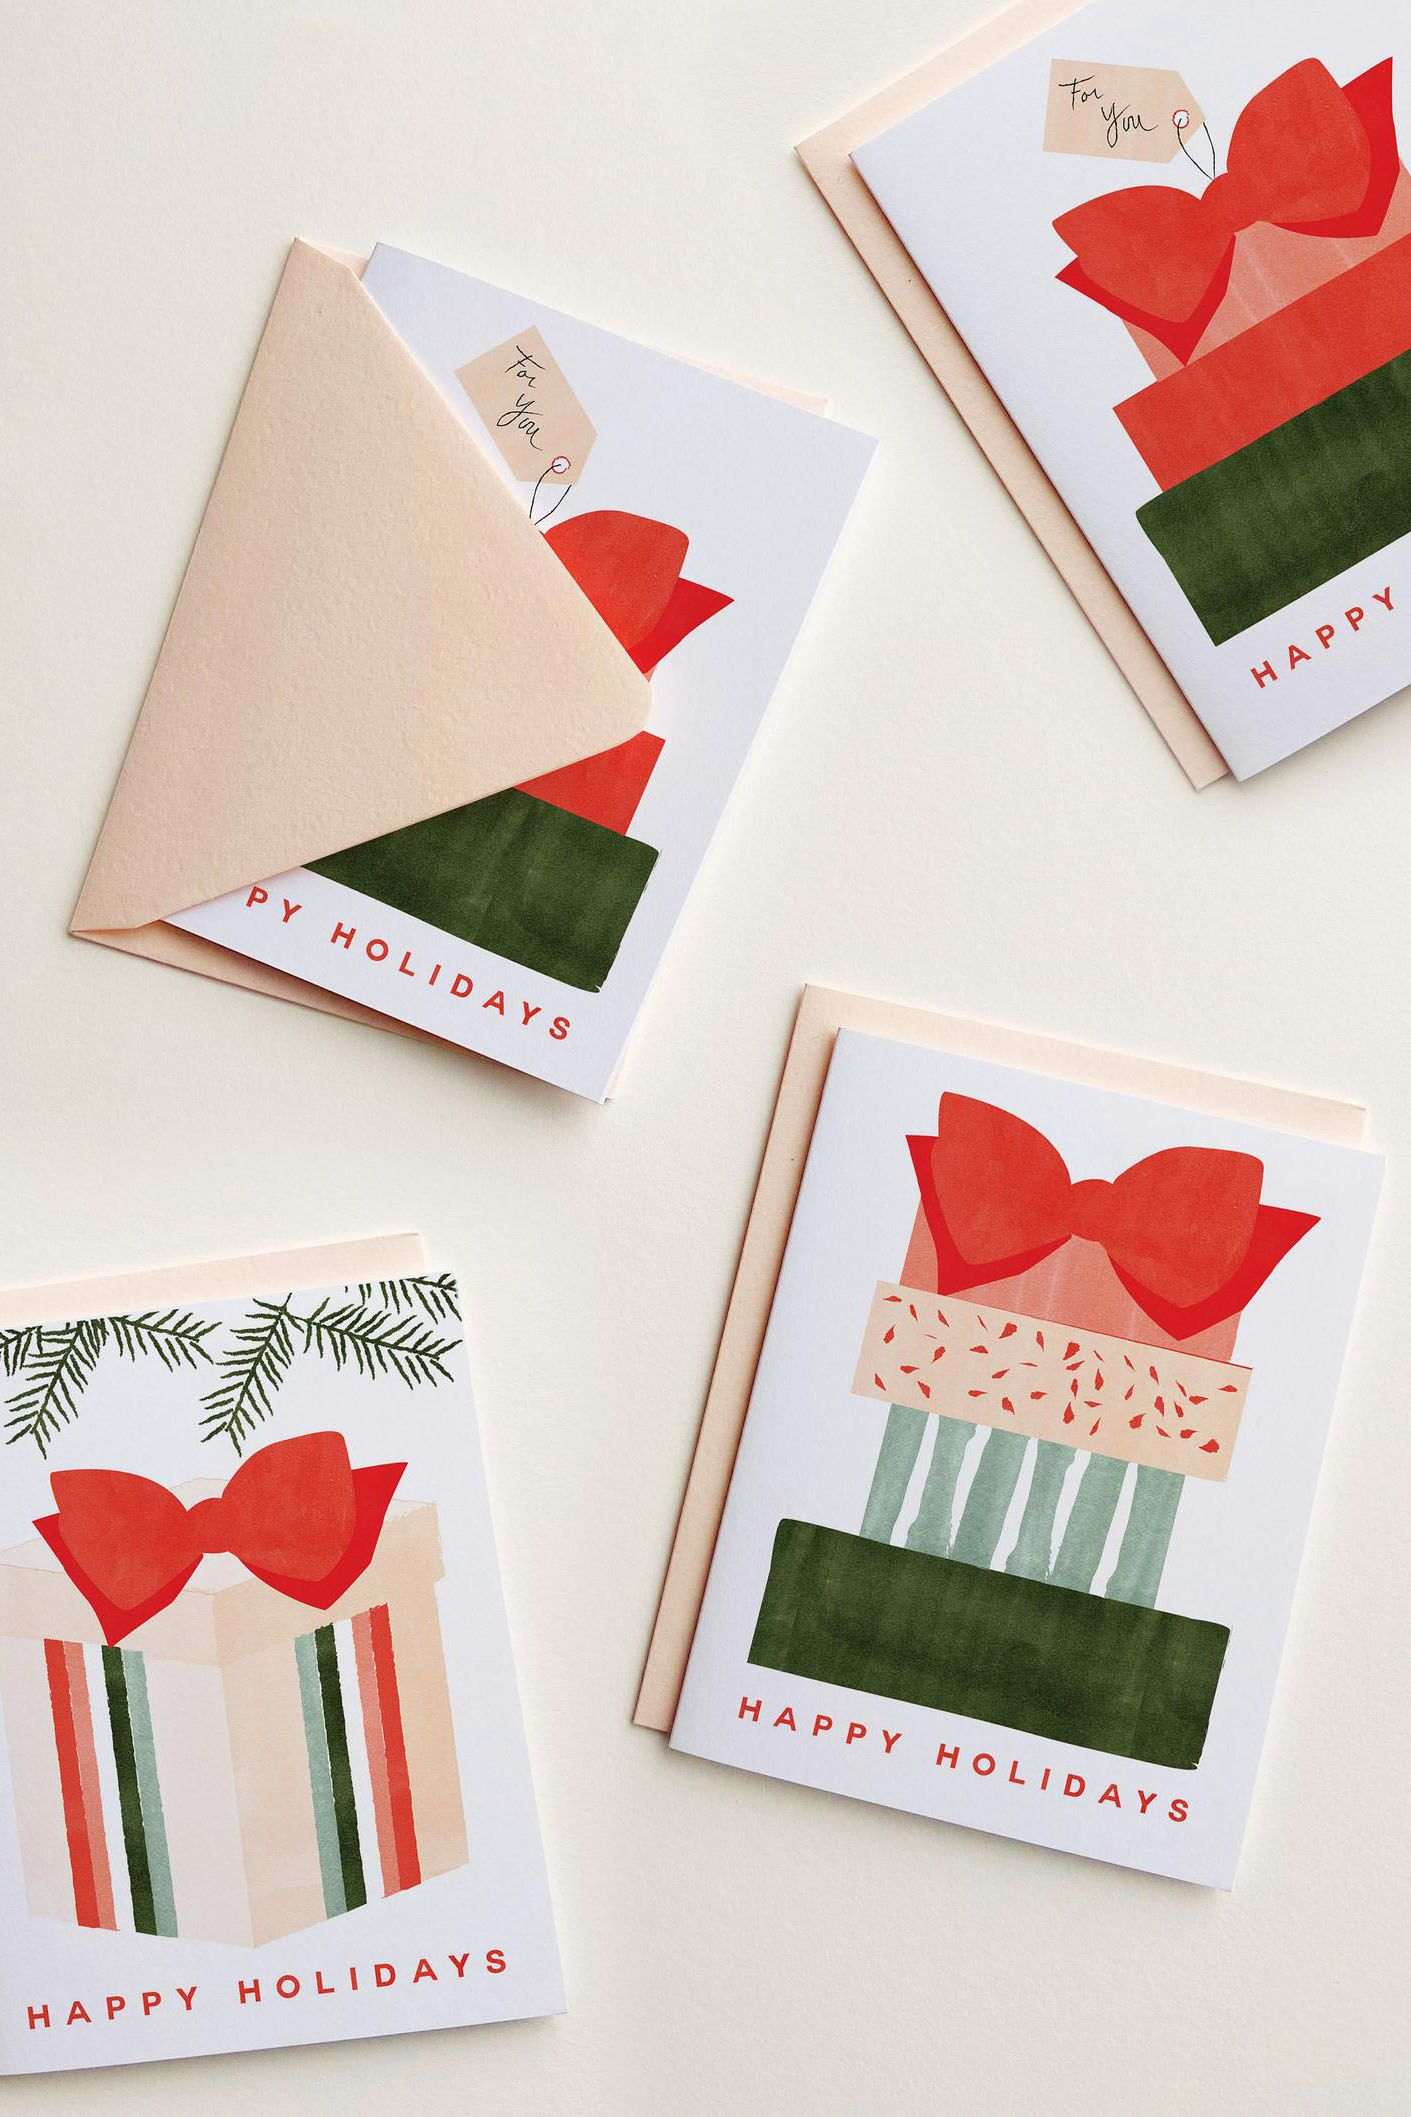 Happy Holidays card illustrated by hand. This holiday card features a watercolor gift with a simple and sweet message to send to your loved ones.